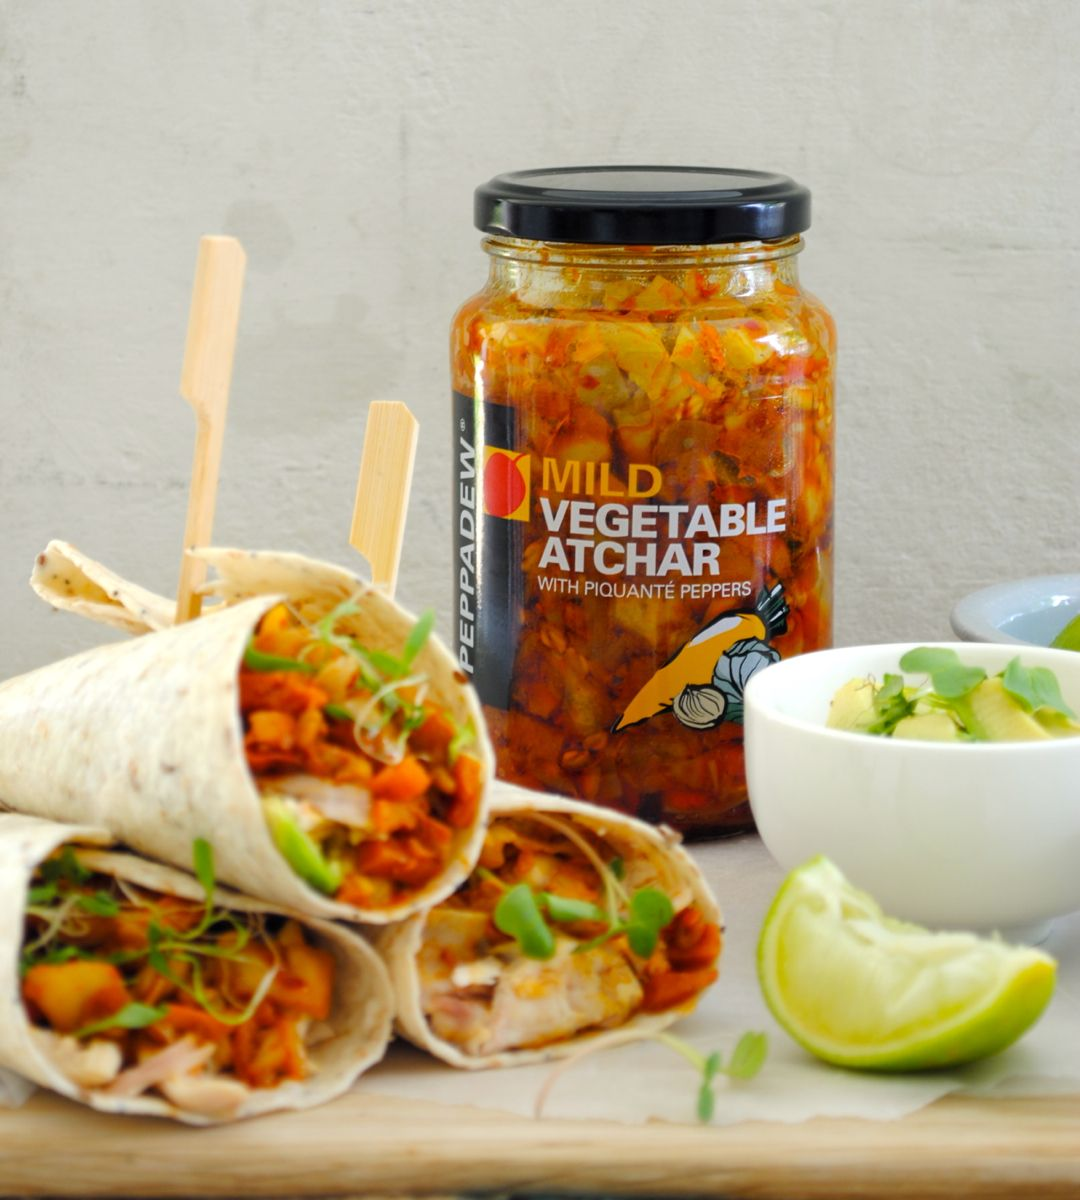 13 African Recipes: Roast Chicken Wraps With Avocado And Atchar